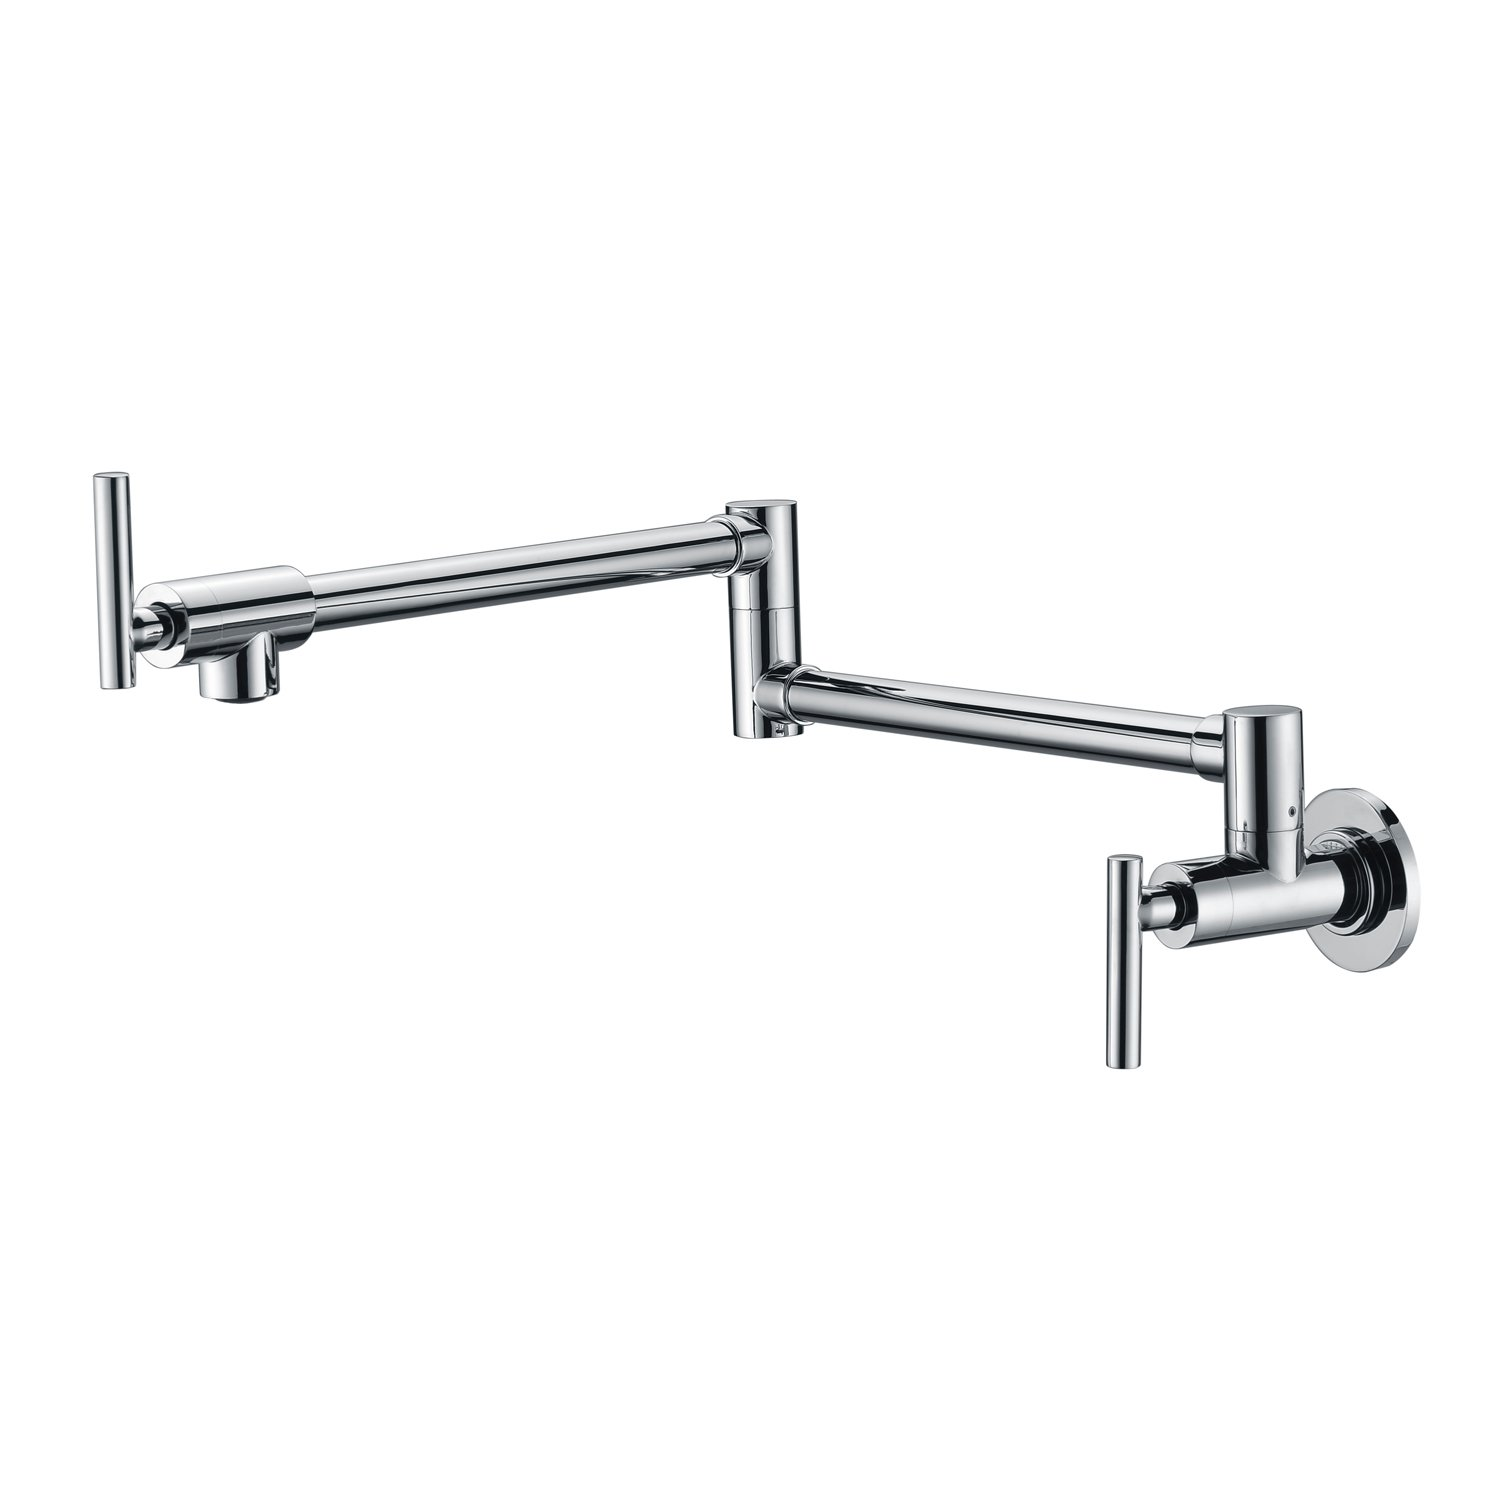 Sumerain Kitchen Faucet Wall Mount